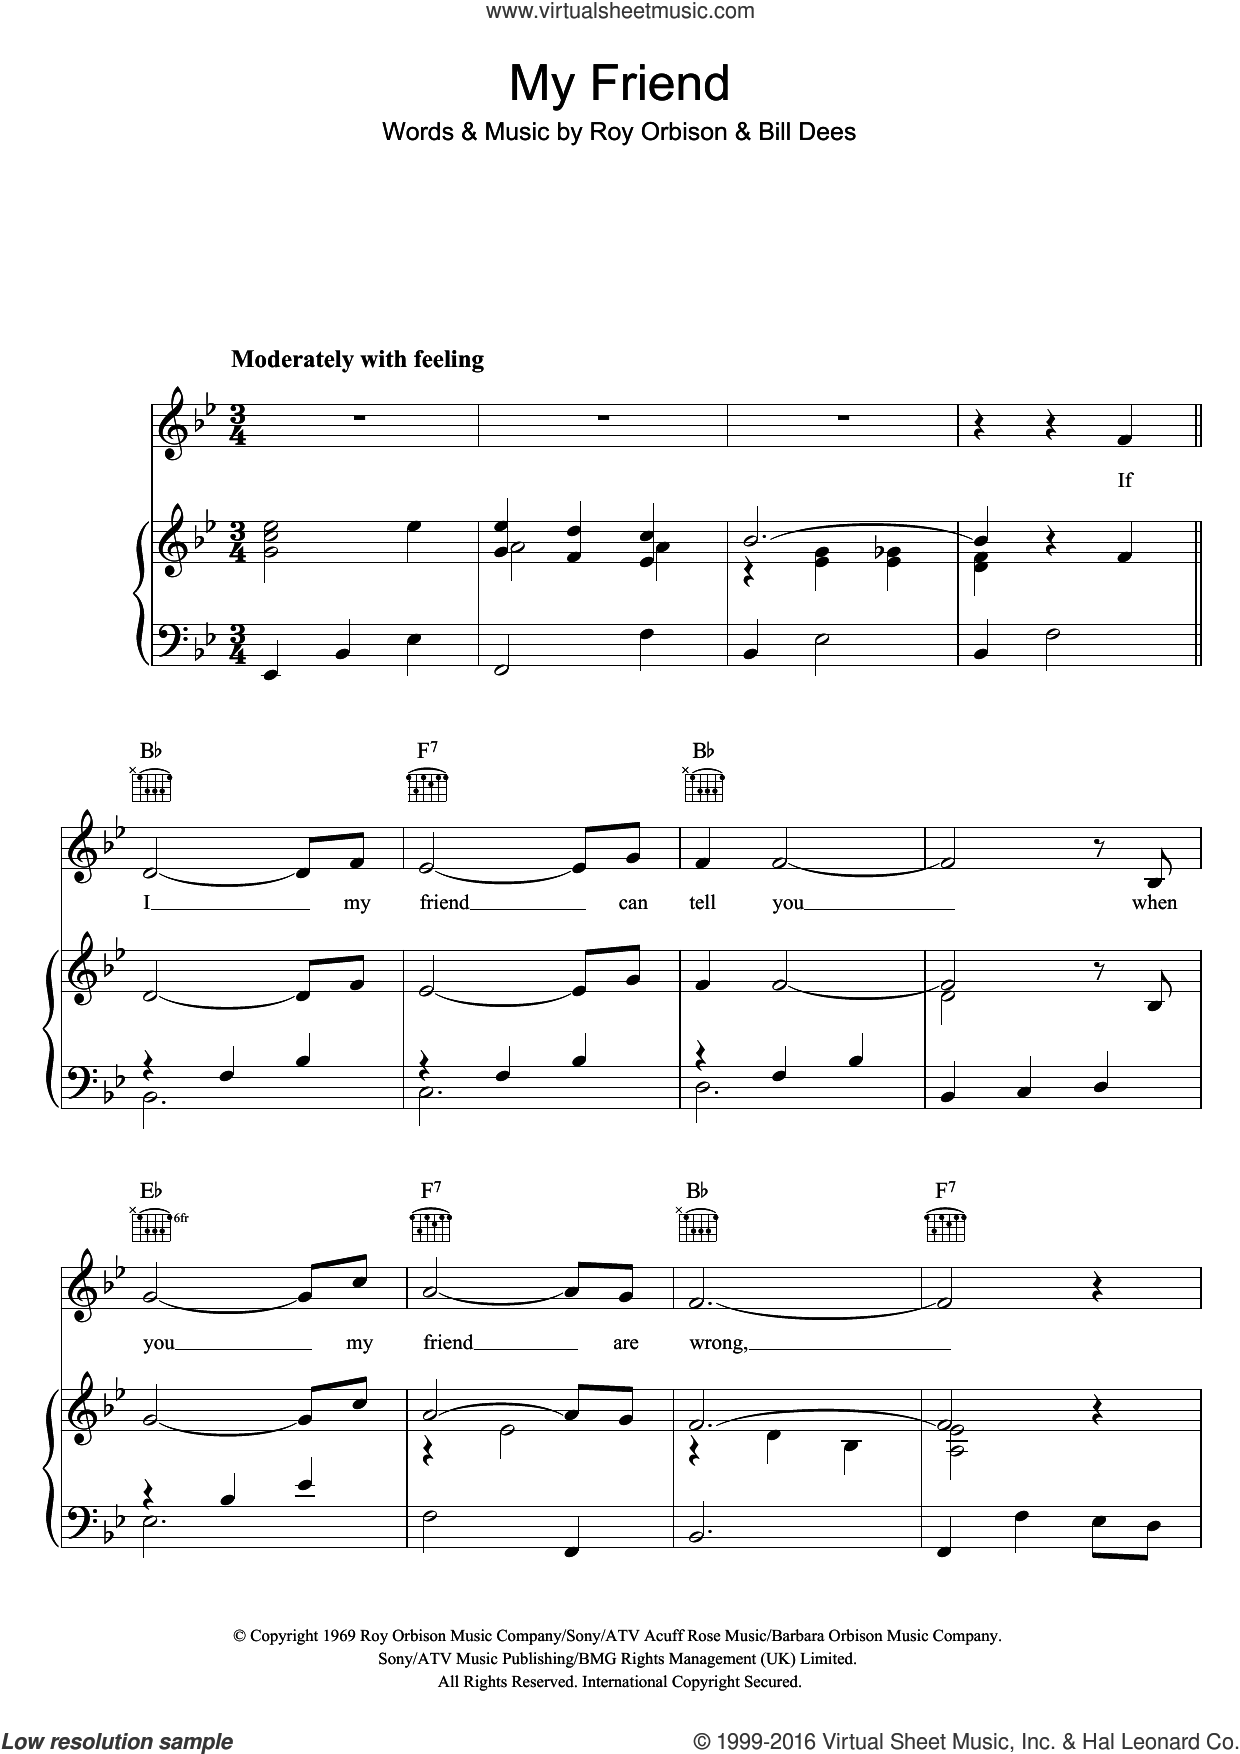 My Friend sheet music for voice, piano or guitar by Bill Dees